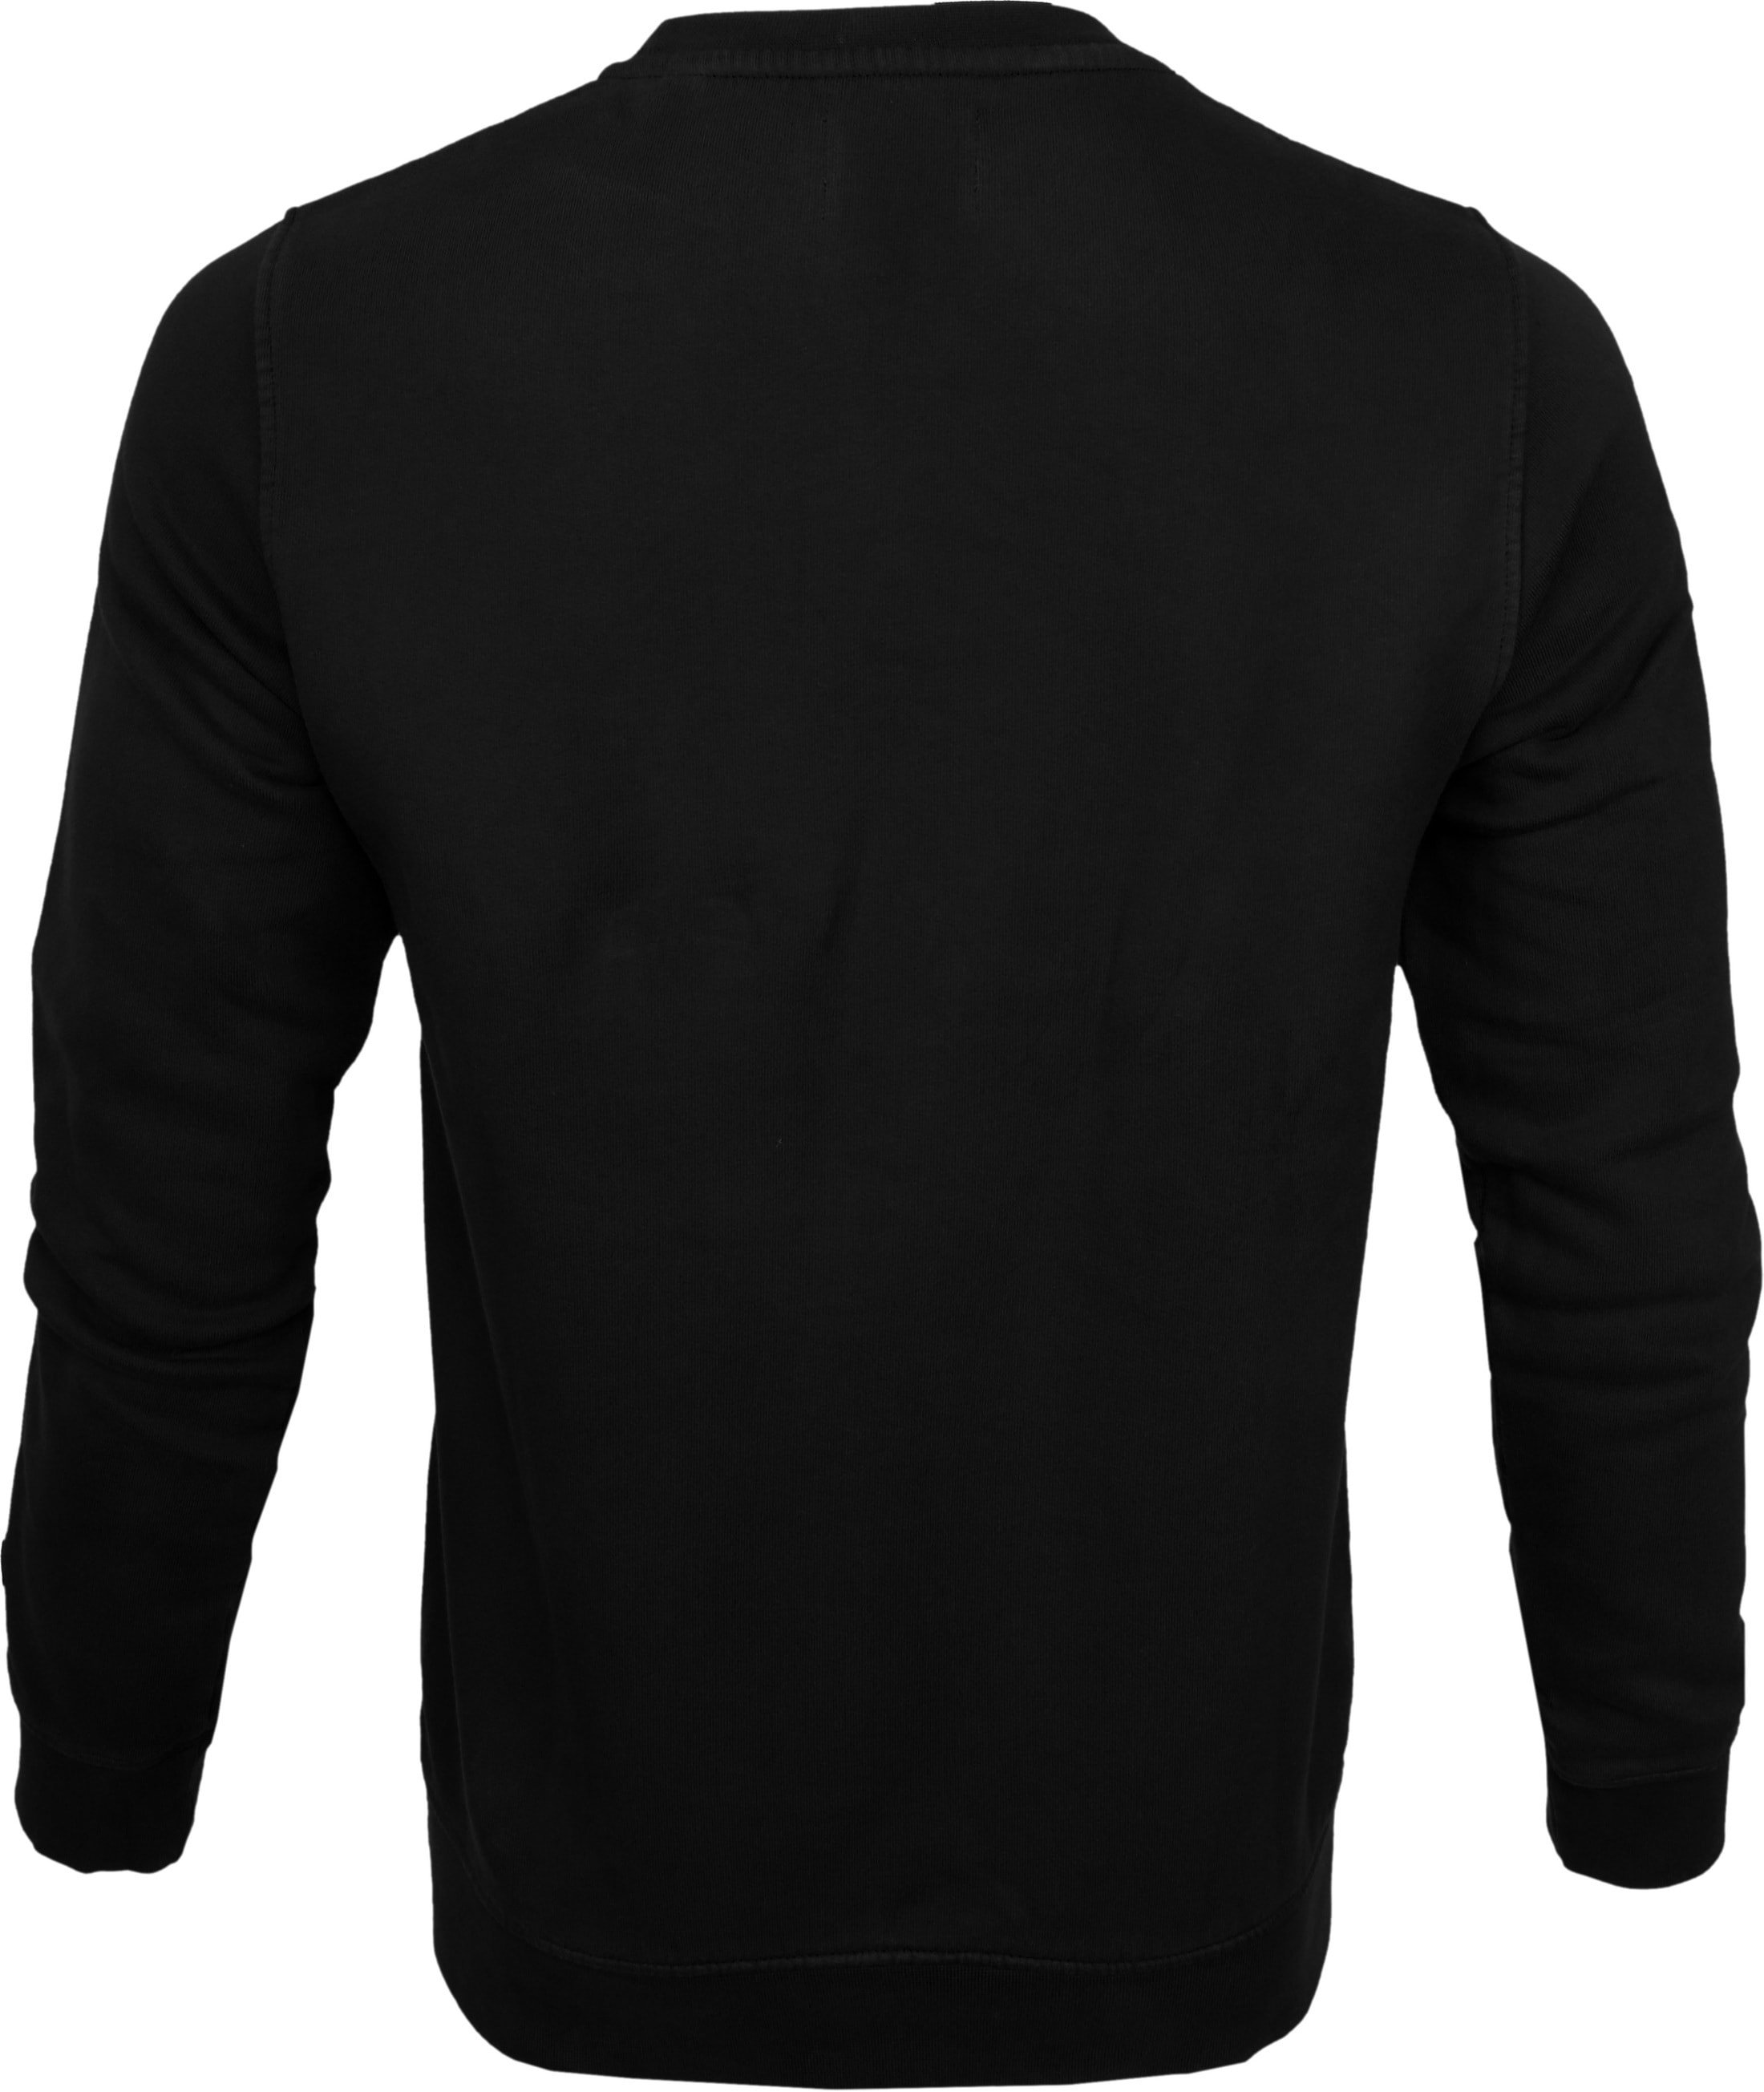 Colorful Standard Sweater Deep Black foto 2